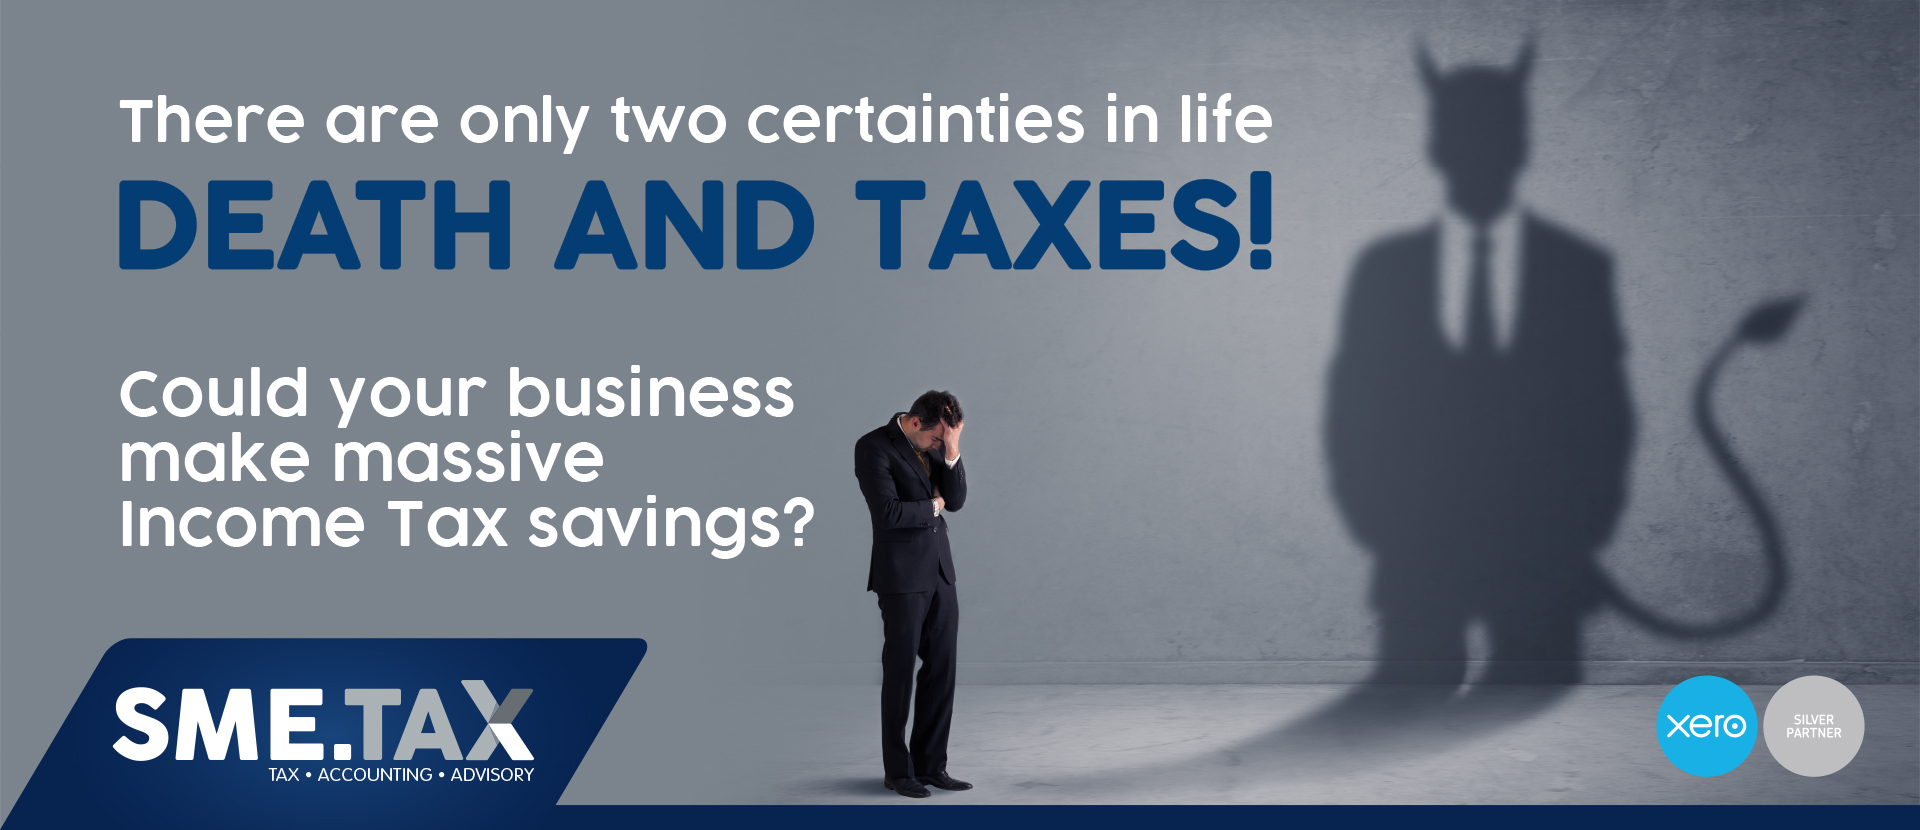 DEATH AND TAXES! Could your business make massive Income Tax savings? 1